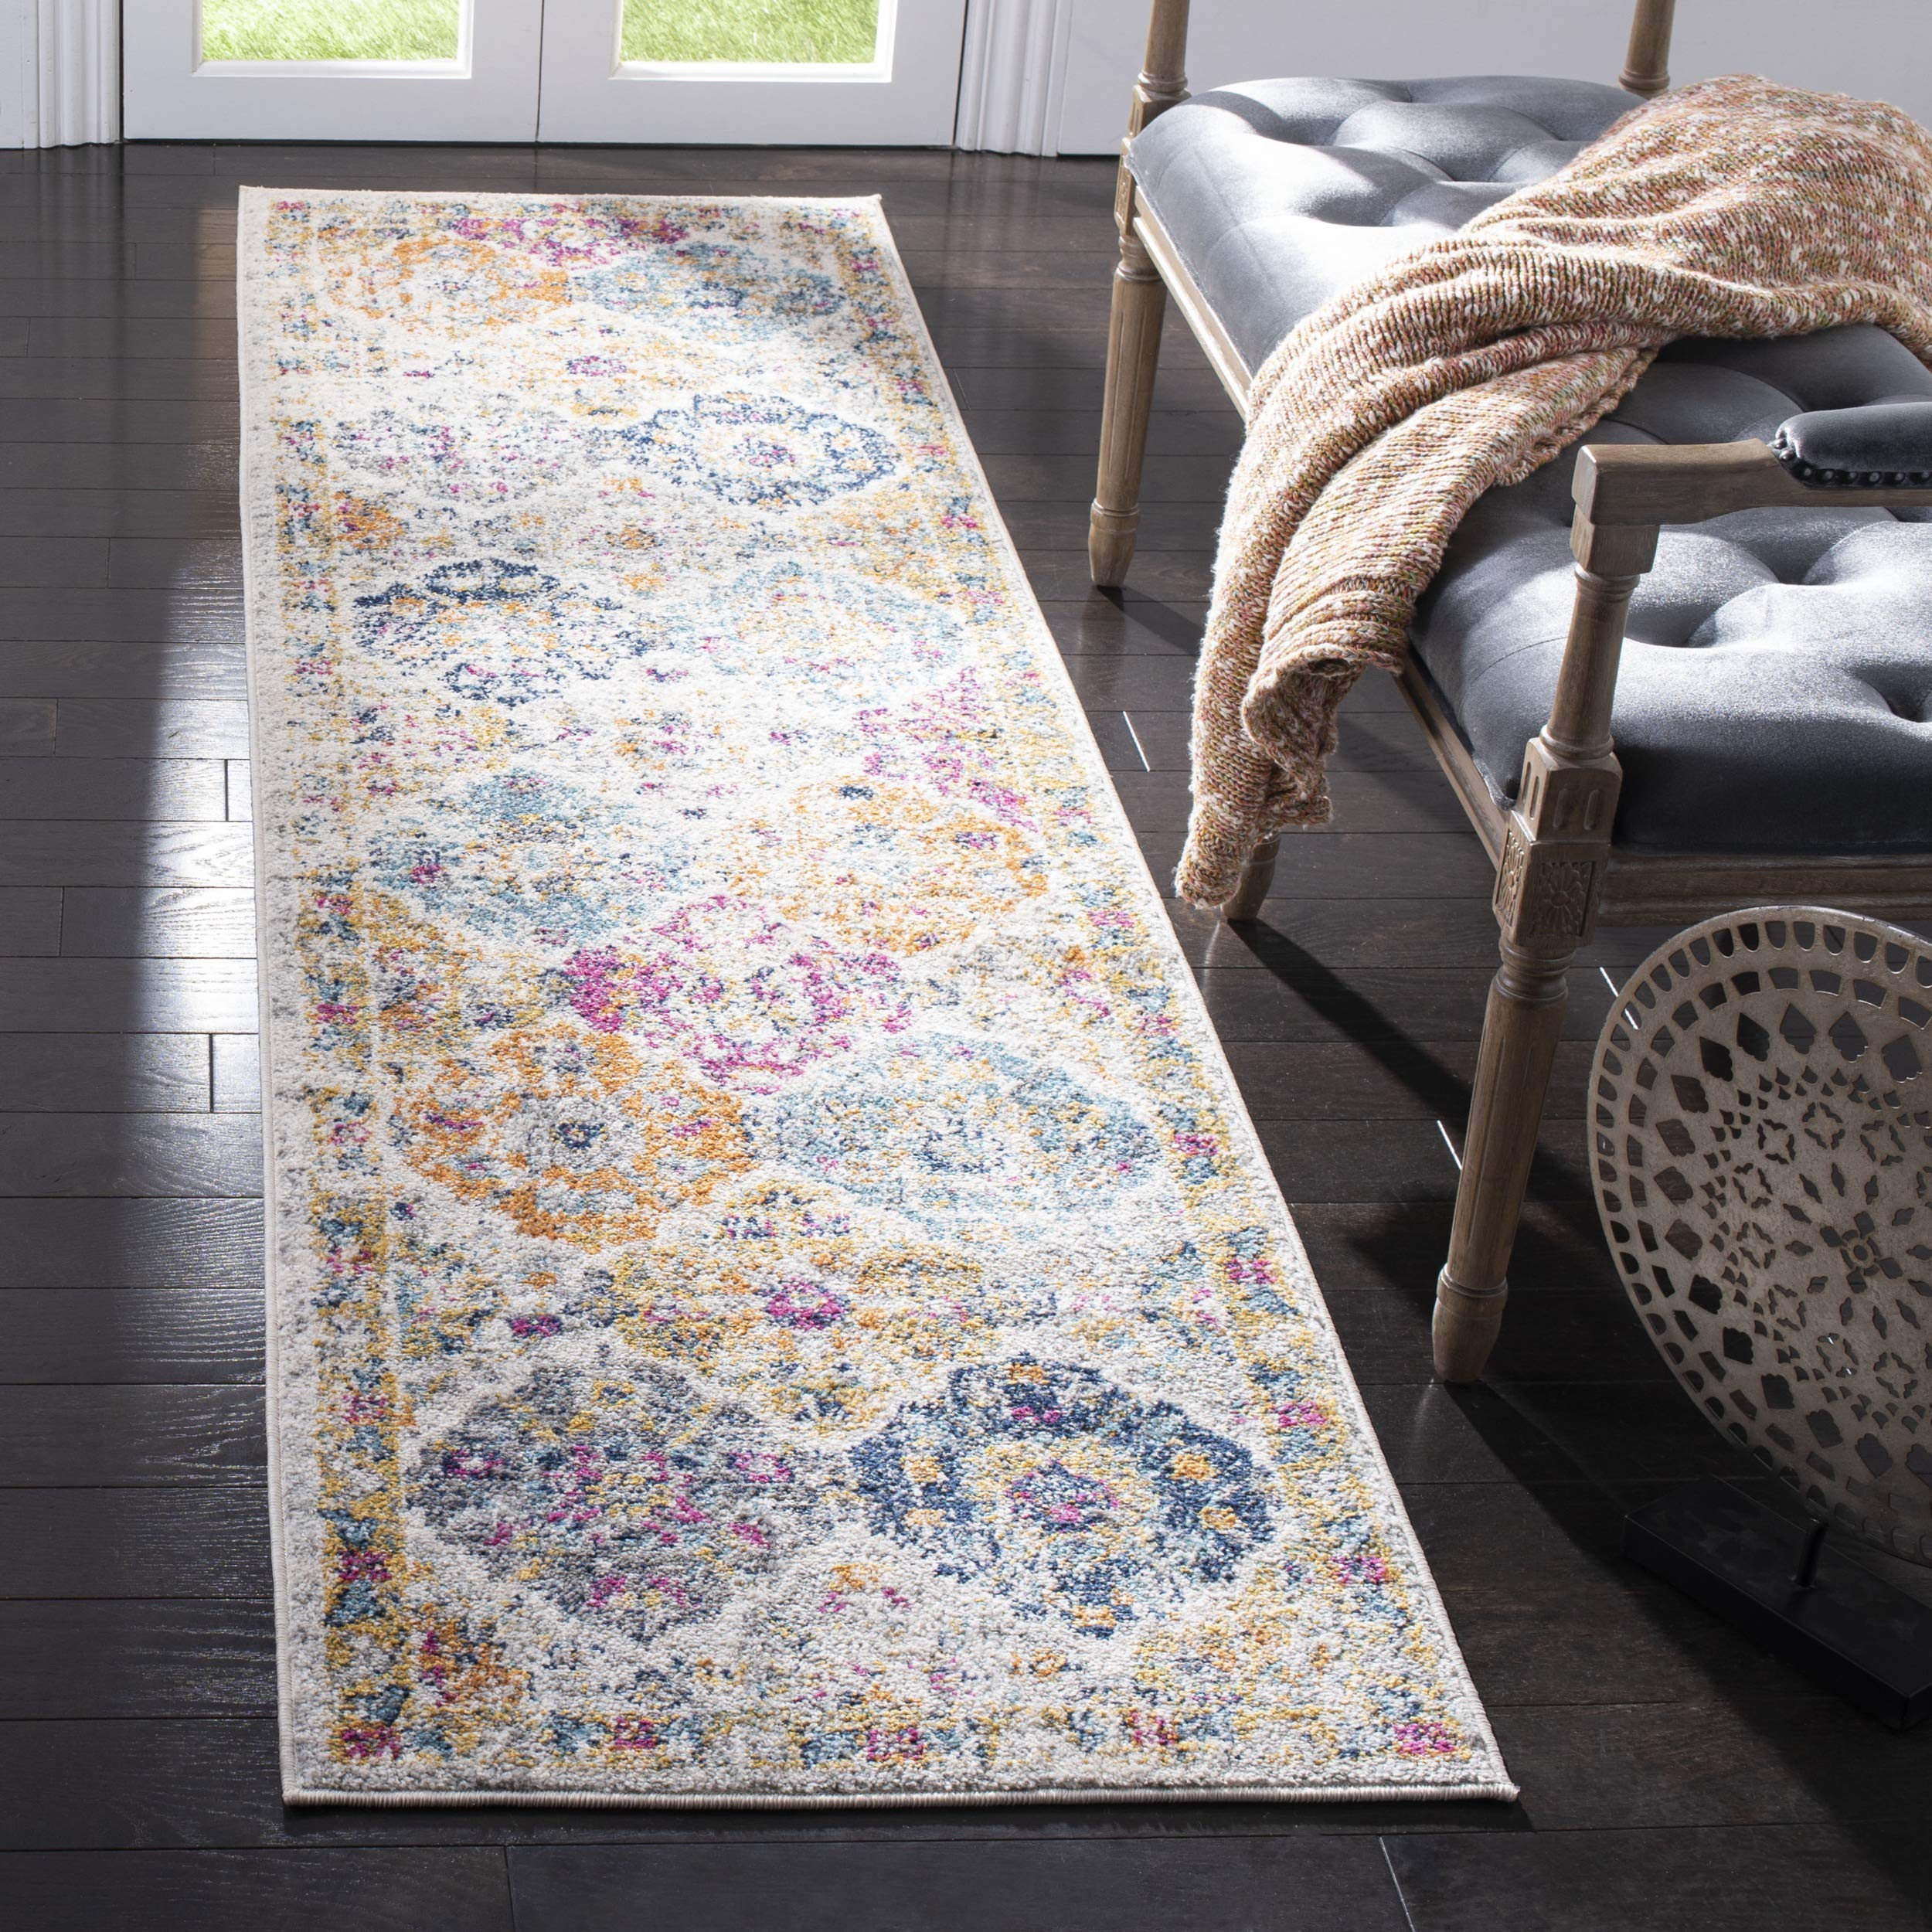 ae1d0d86635 Safavieh Madison Collection Cream Multicolored Bohemian Chic Distressed Rug